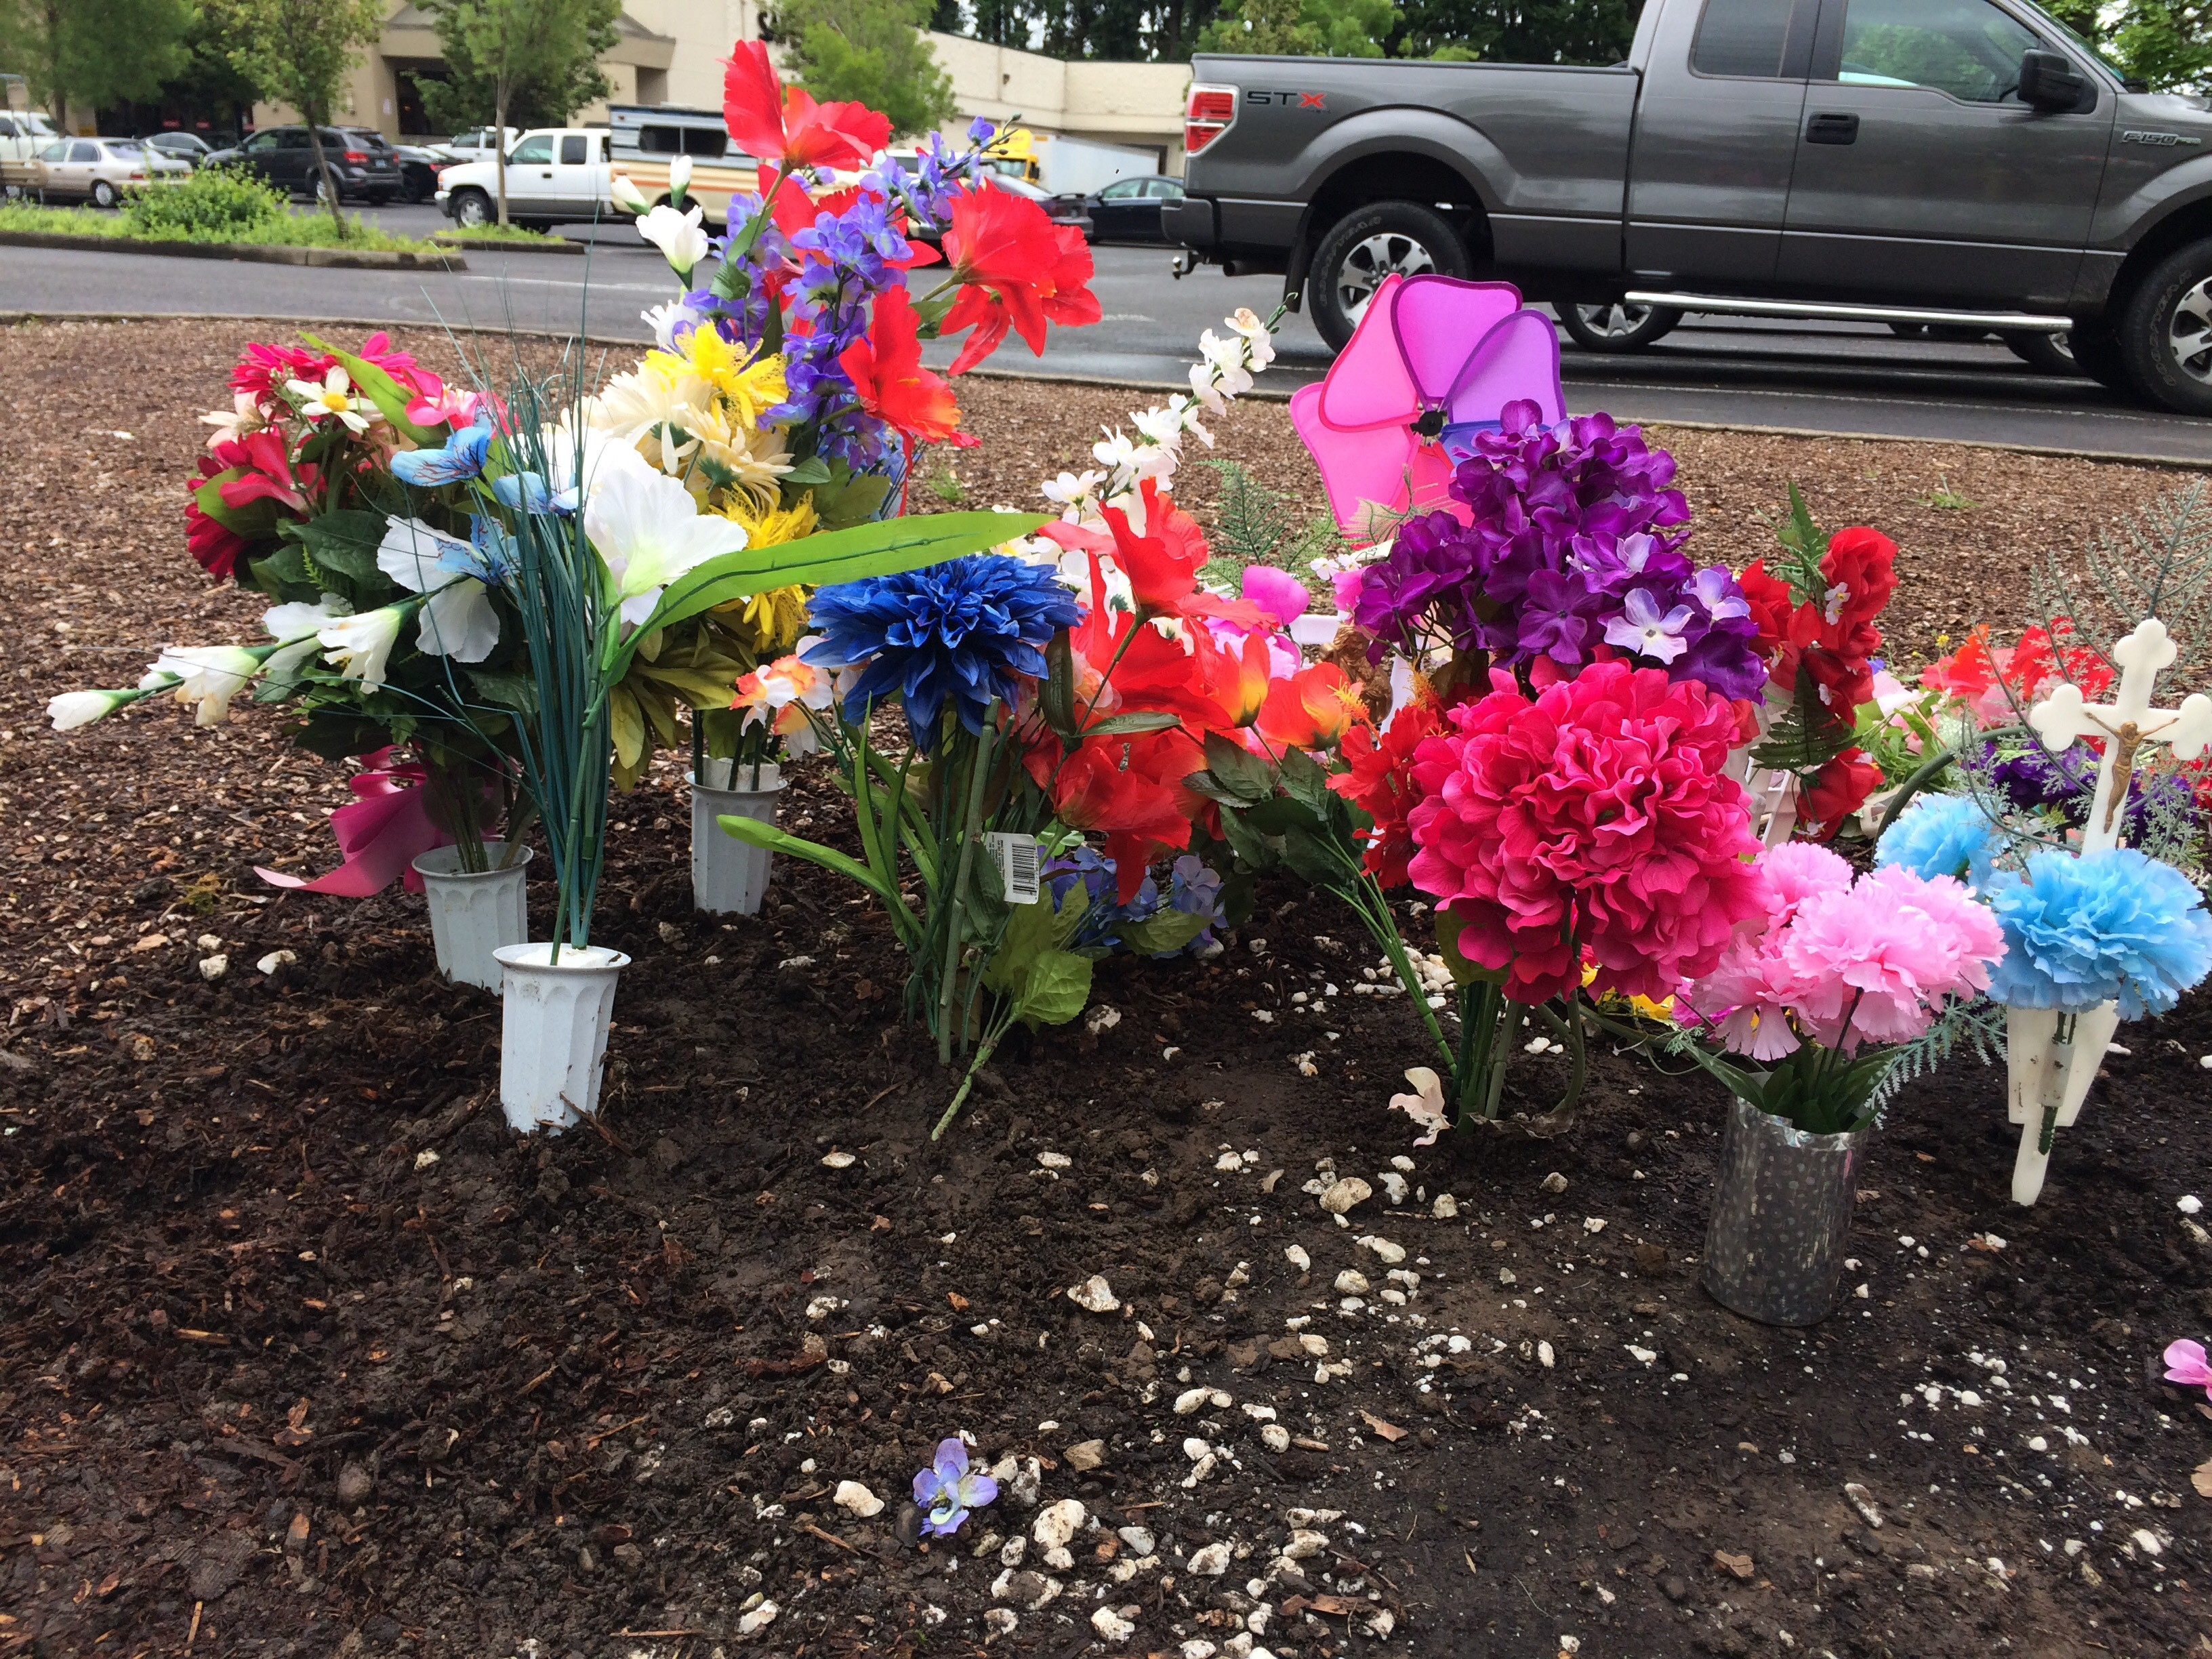 An unknown man planted flowers at the site on Thursday. (SBG)